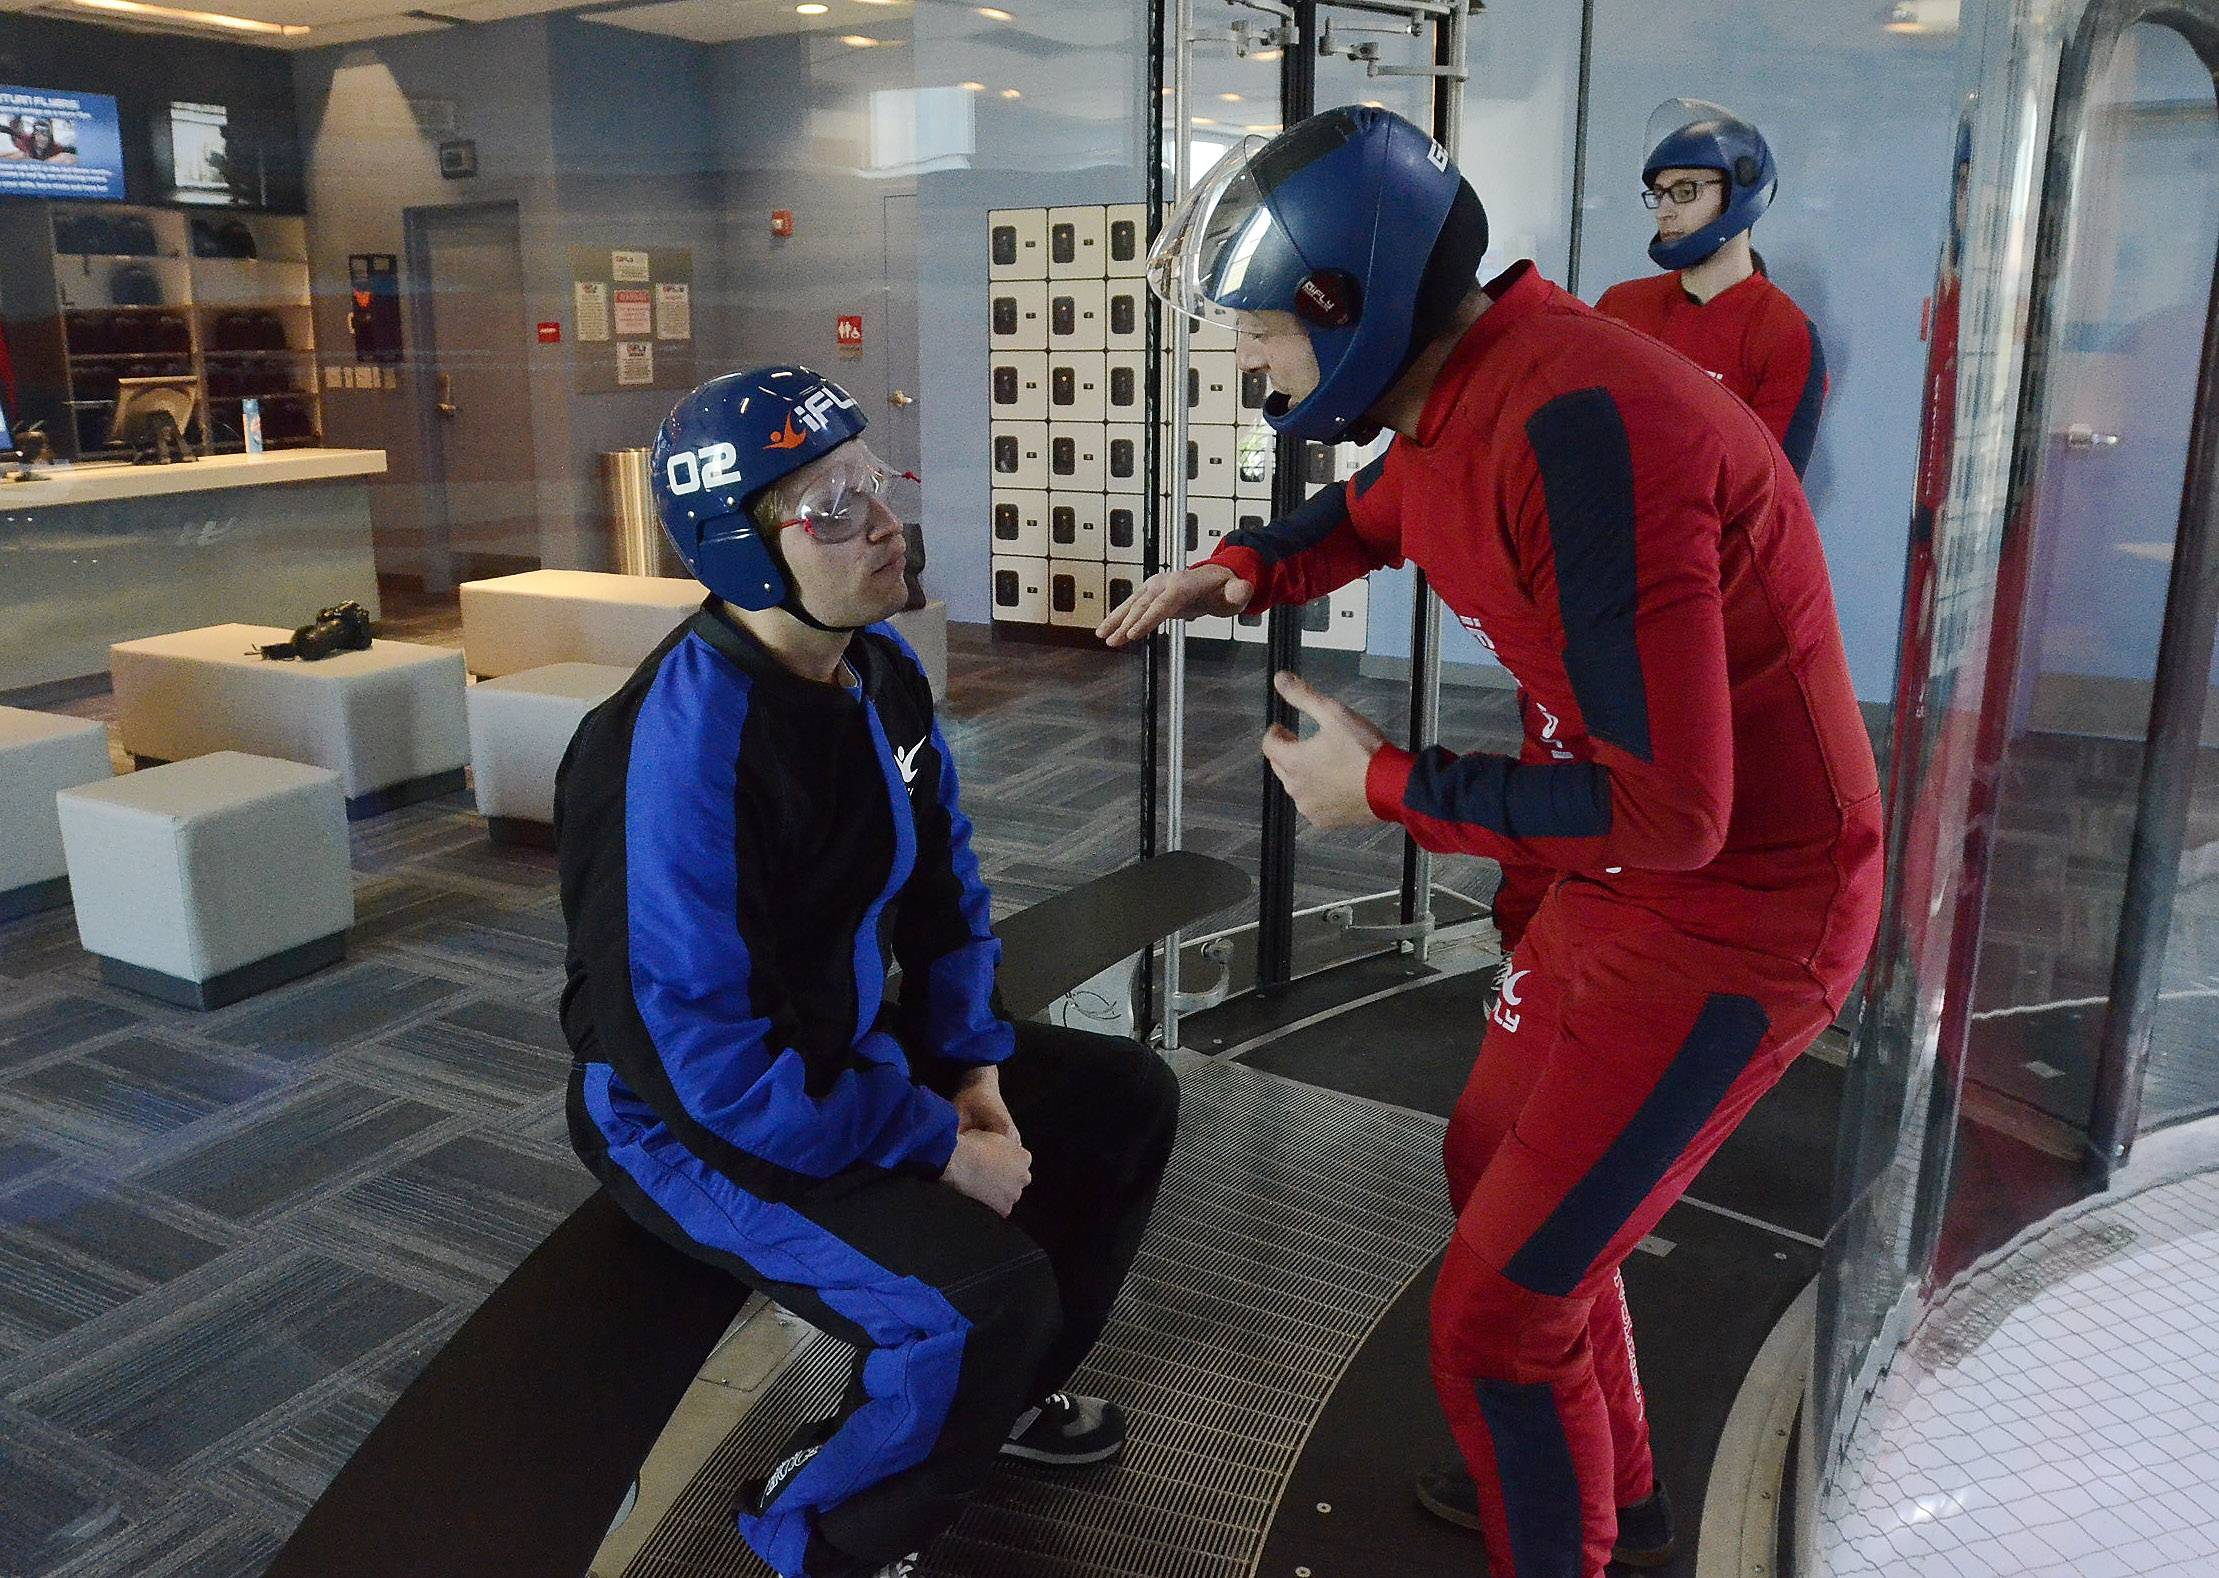 Daily Herald reporter Chris Placek gets some last-minute advice from instructor Gabriel Roth before entering the flight chamber at iFLY in Rosemont.